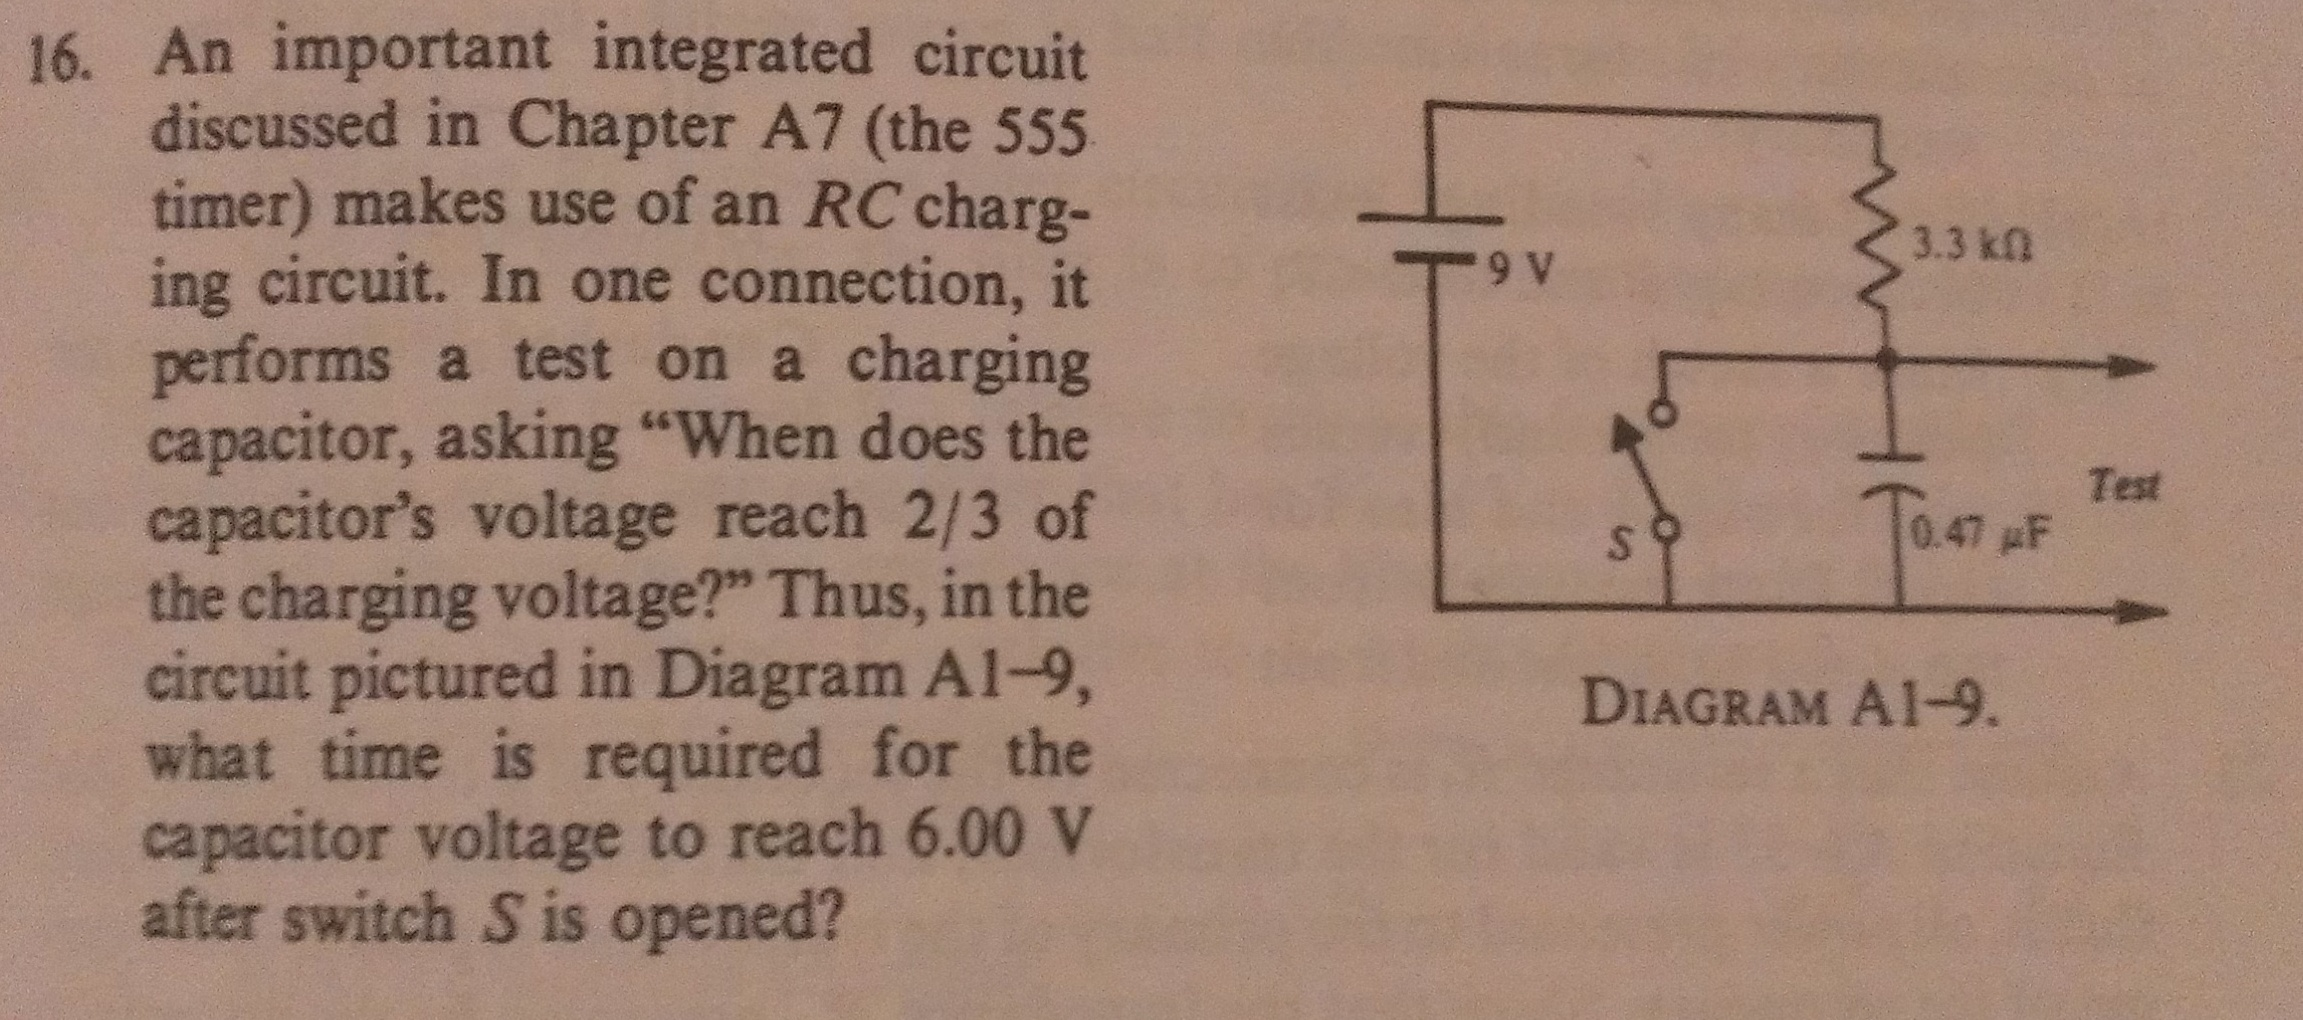 Integrated Circuit 555